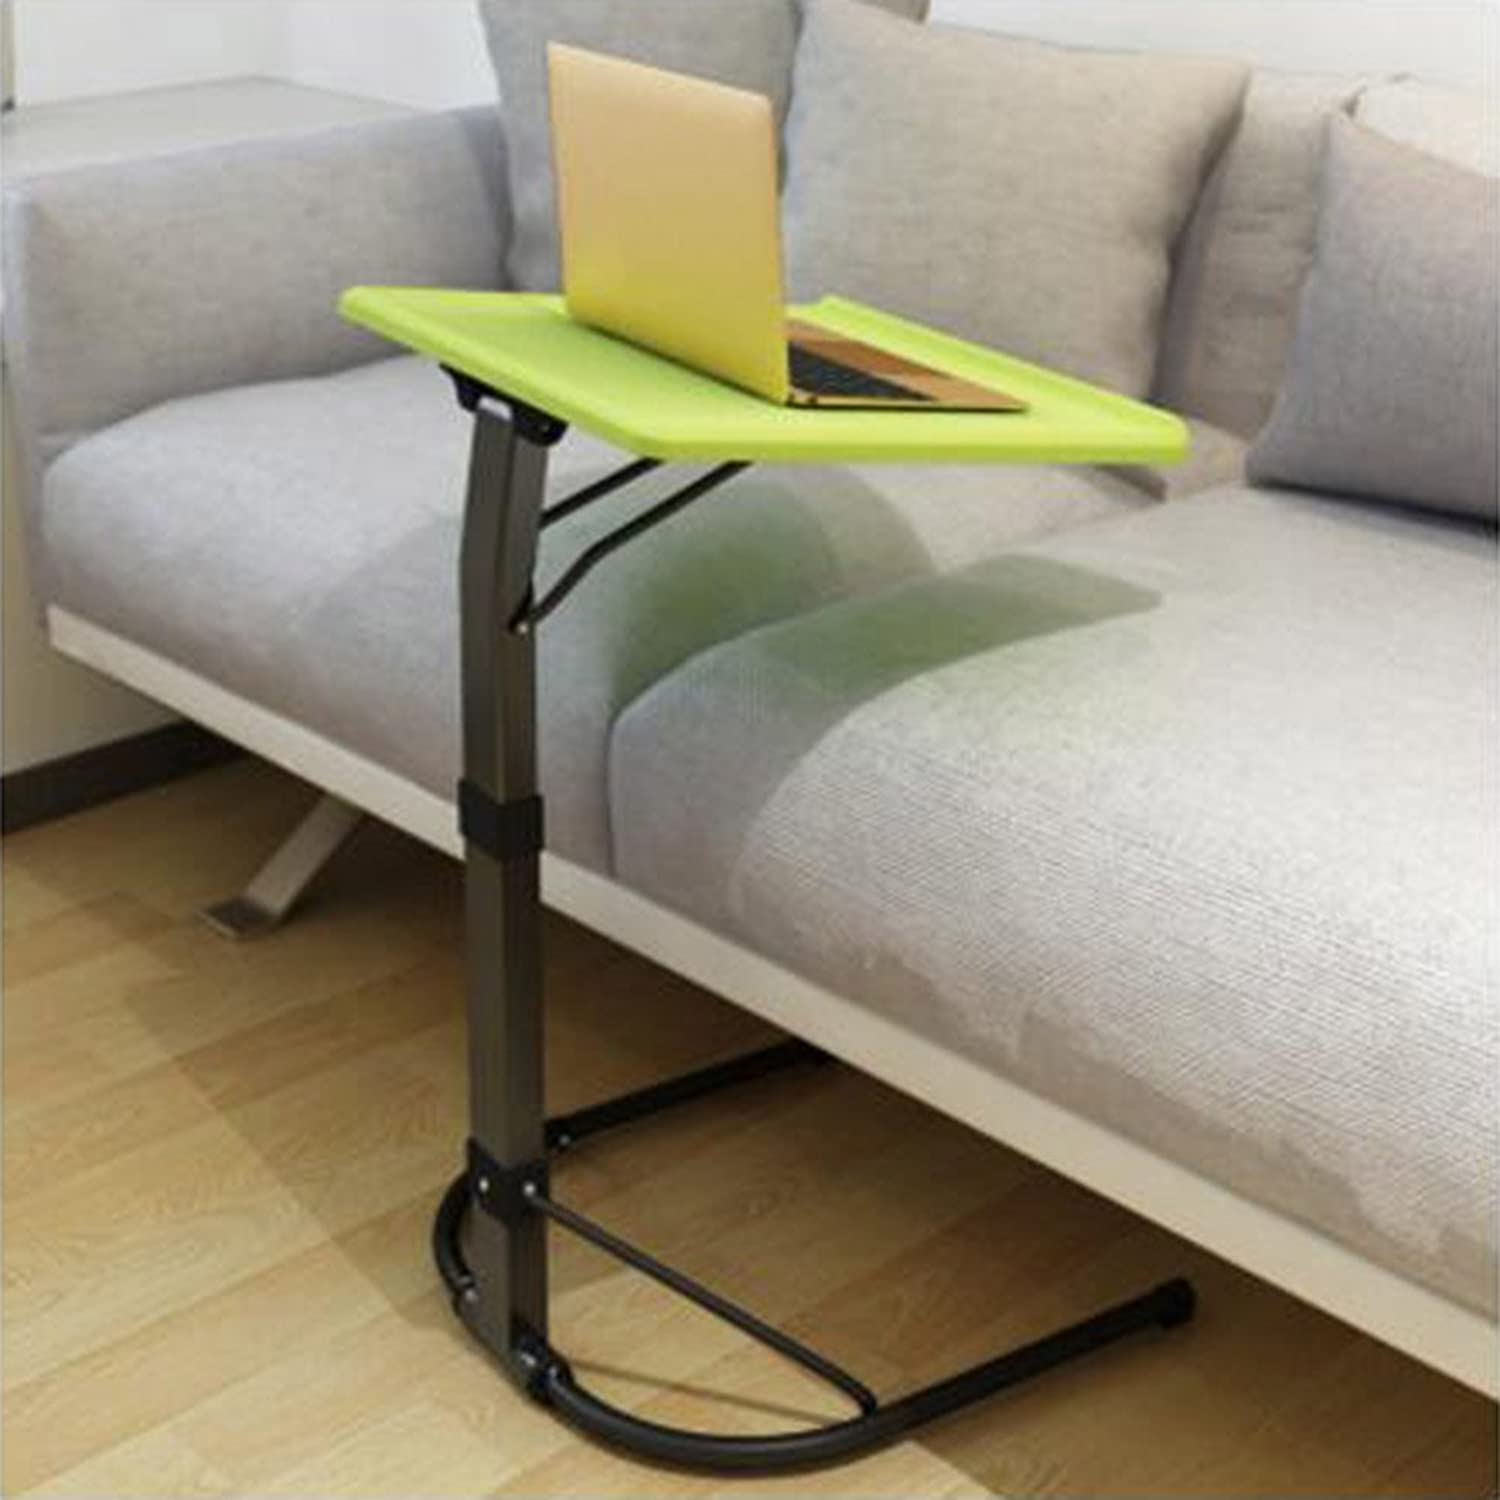 Laptop Table Bed Use Lazy Folding Lift Removable Desk Simple Sofa ...